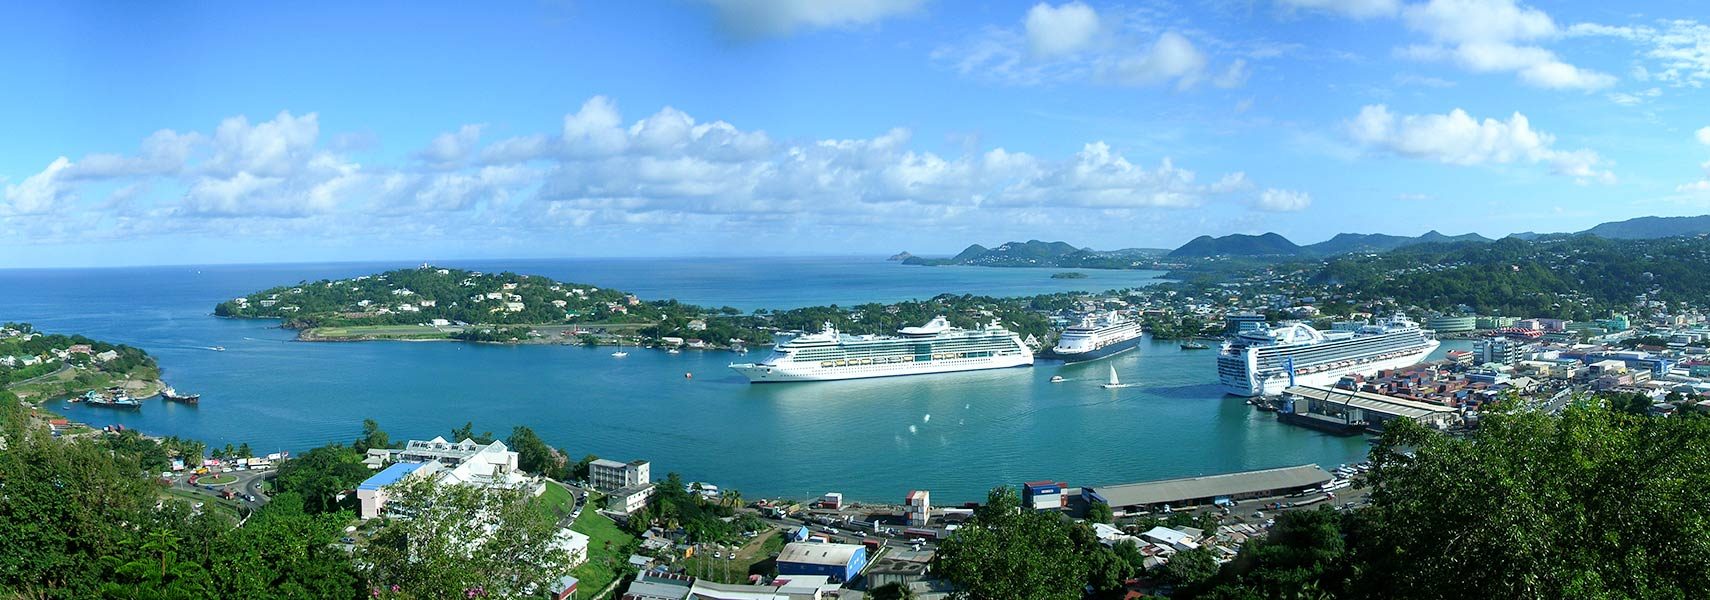 Google Map Of Castries Saint Lucia Nations Online Project - Saint lucia map